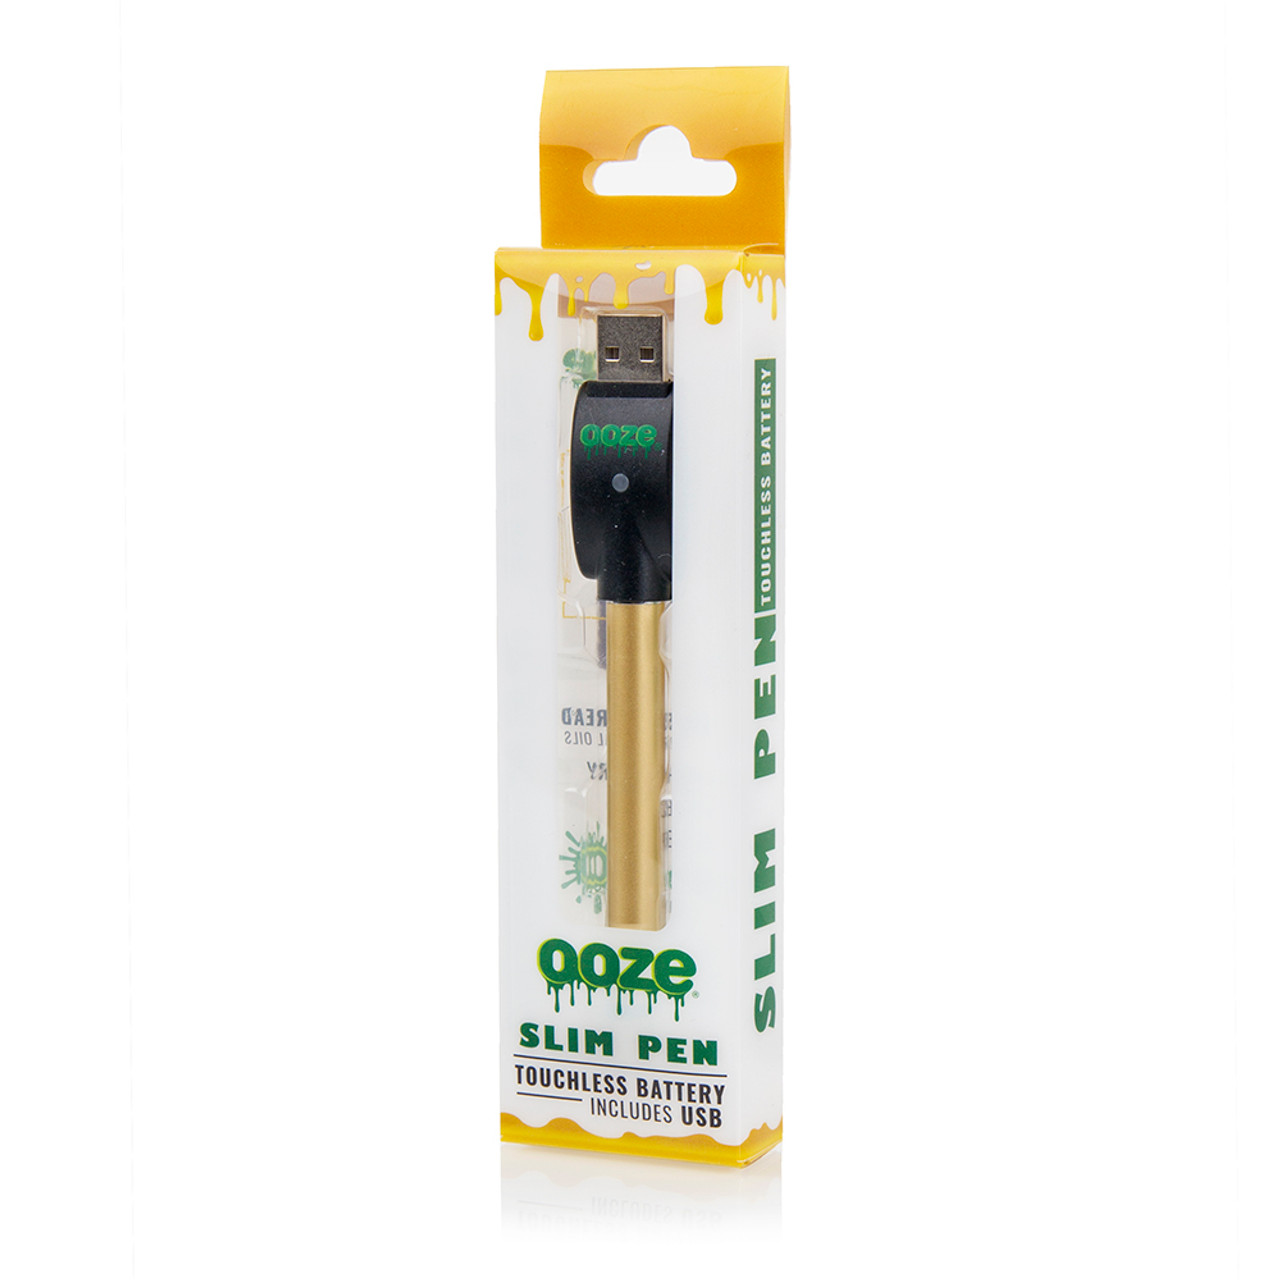 Ooze Slim Pen Touchless Battery w/USB Charger